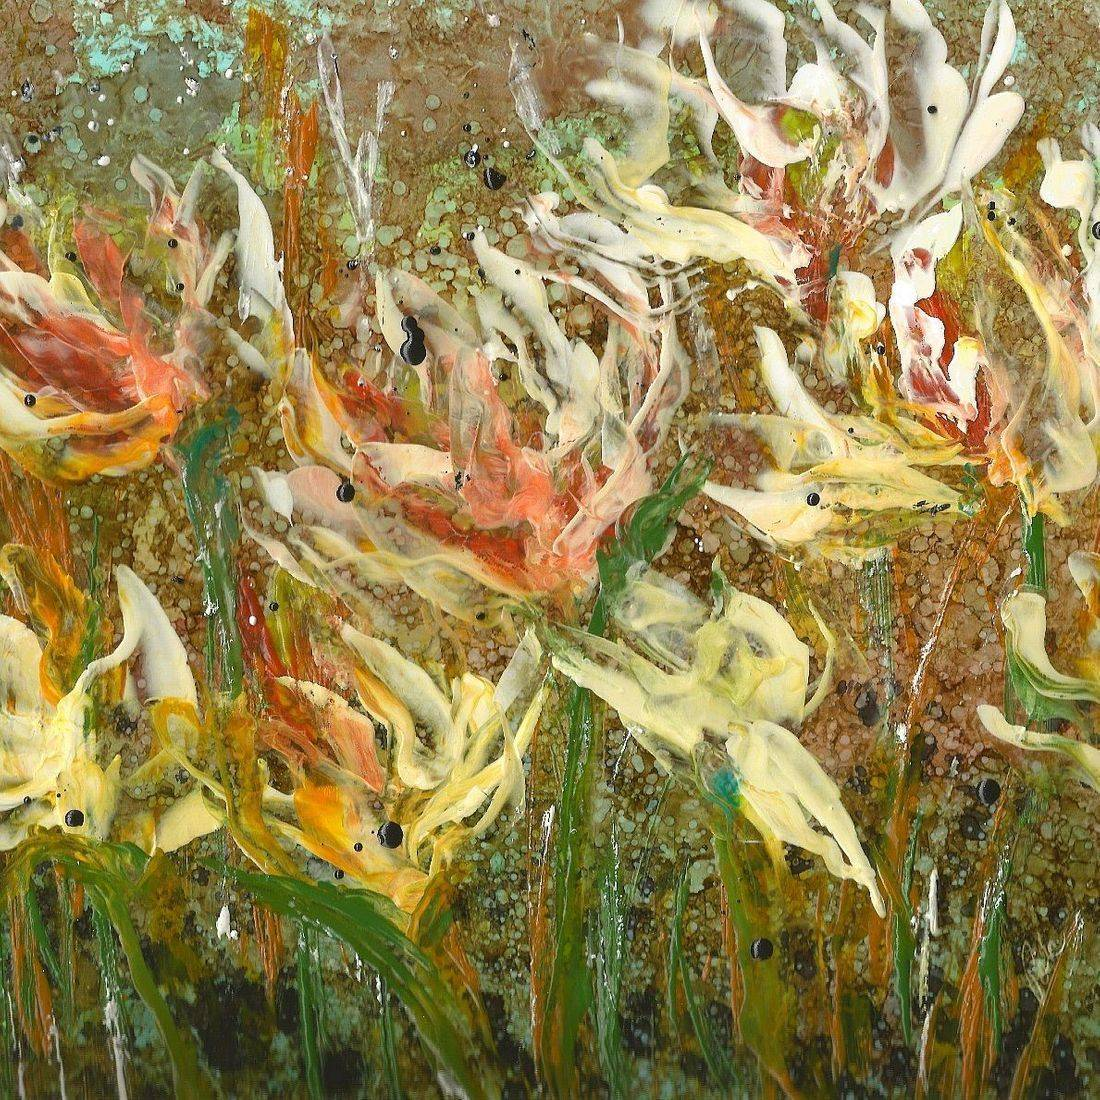 Abstract Encaustic Oil Painting, Floral artwork, Encaustic floral, encaustic and alcohol ink fine art print